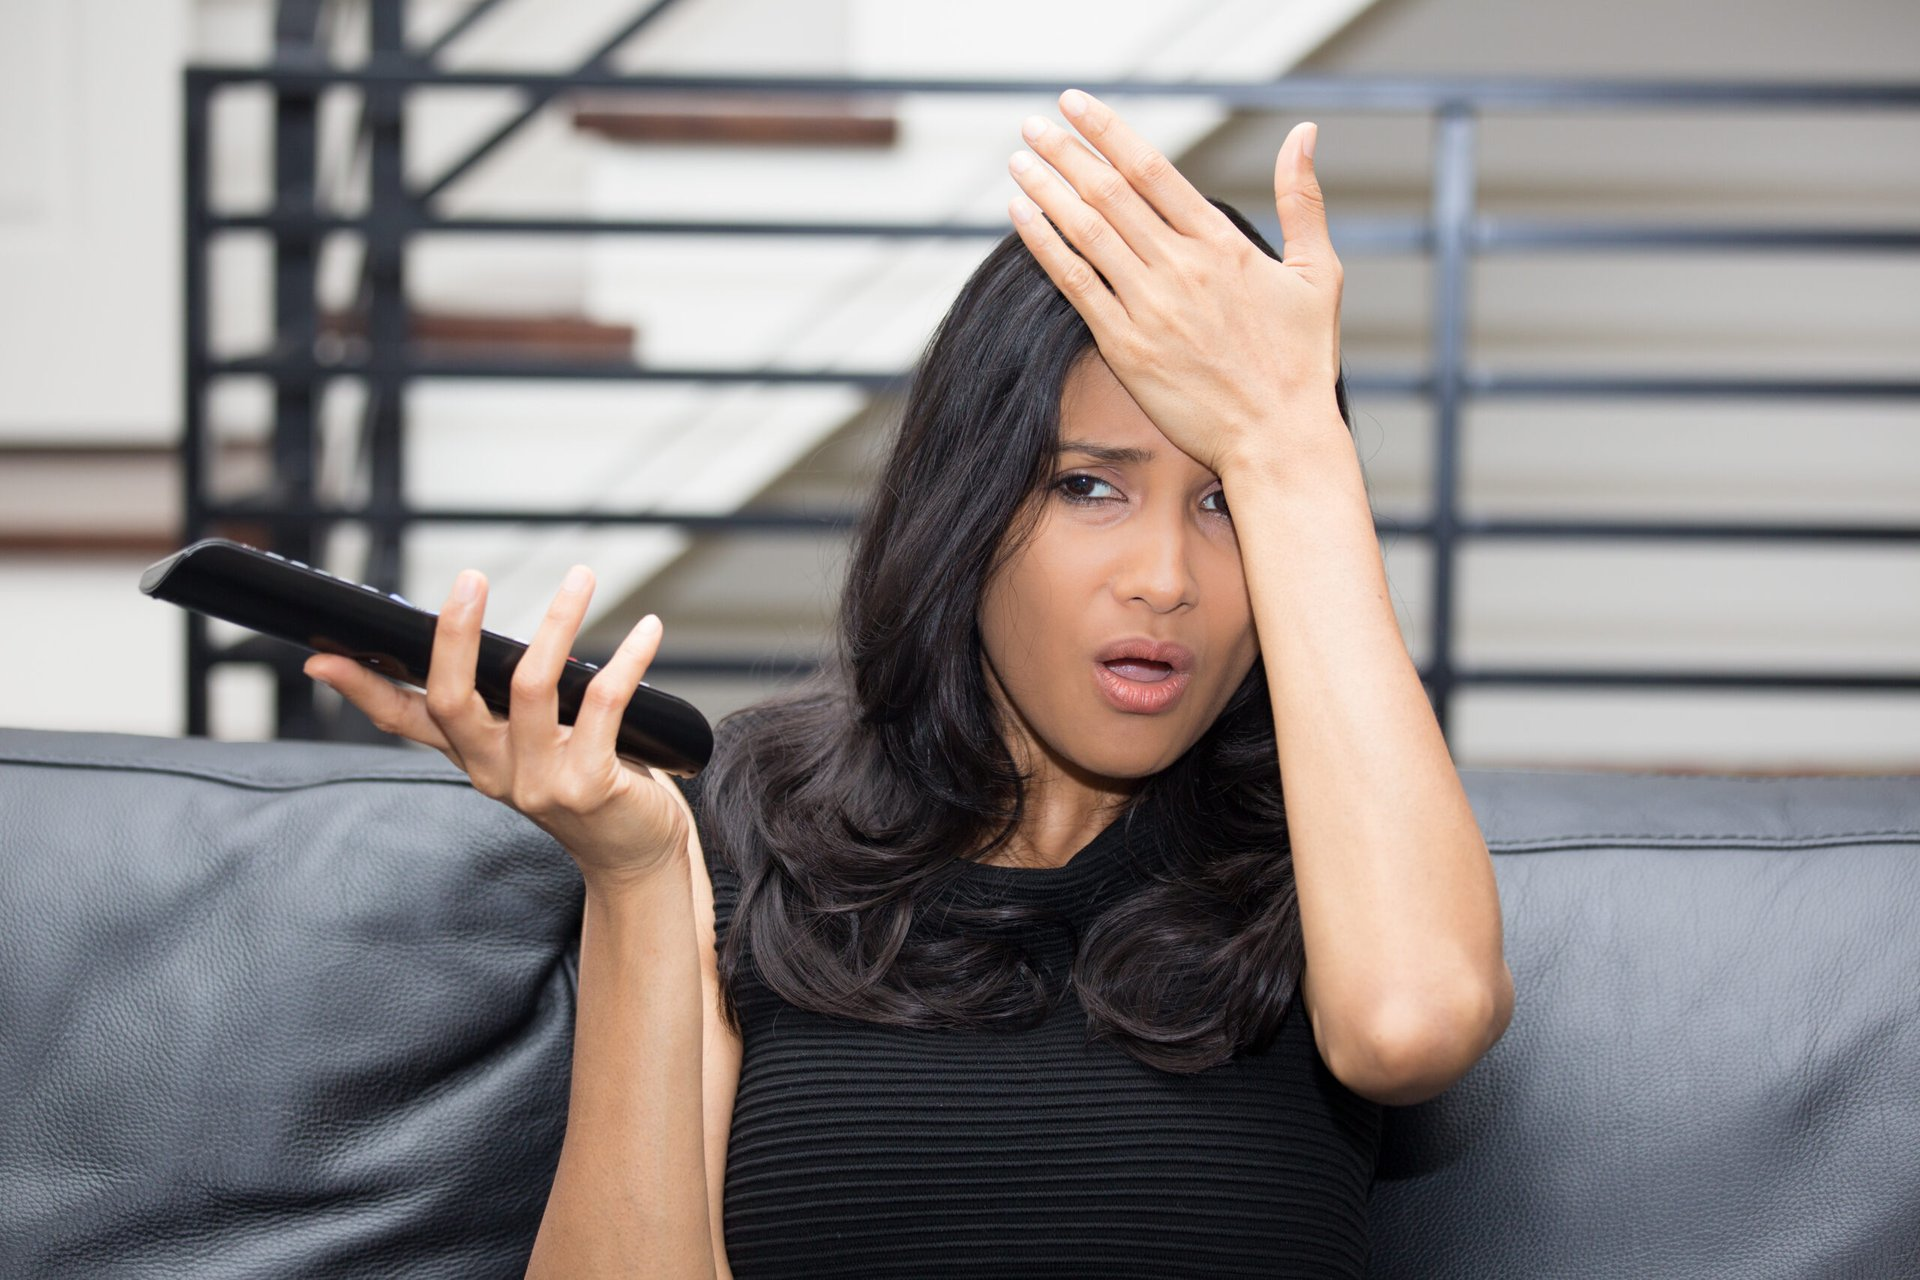 Unhappy woman watching TV